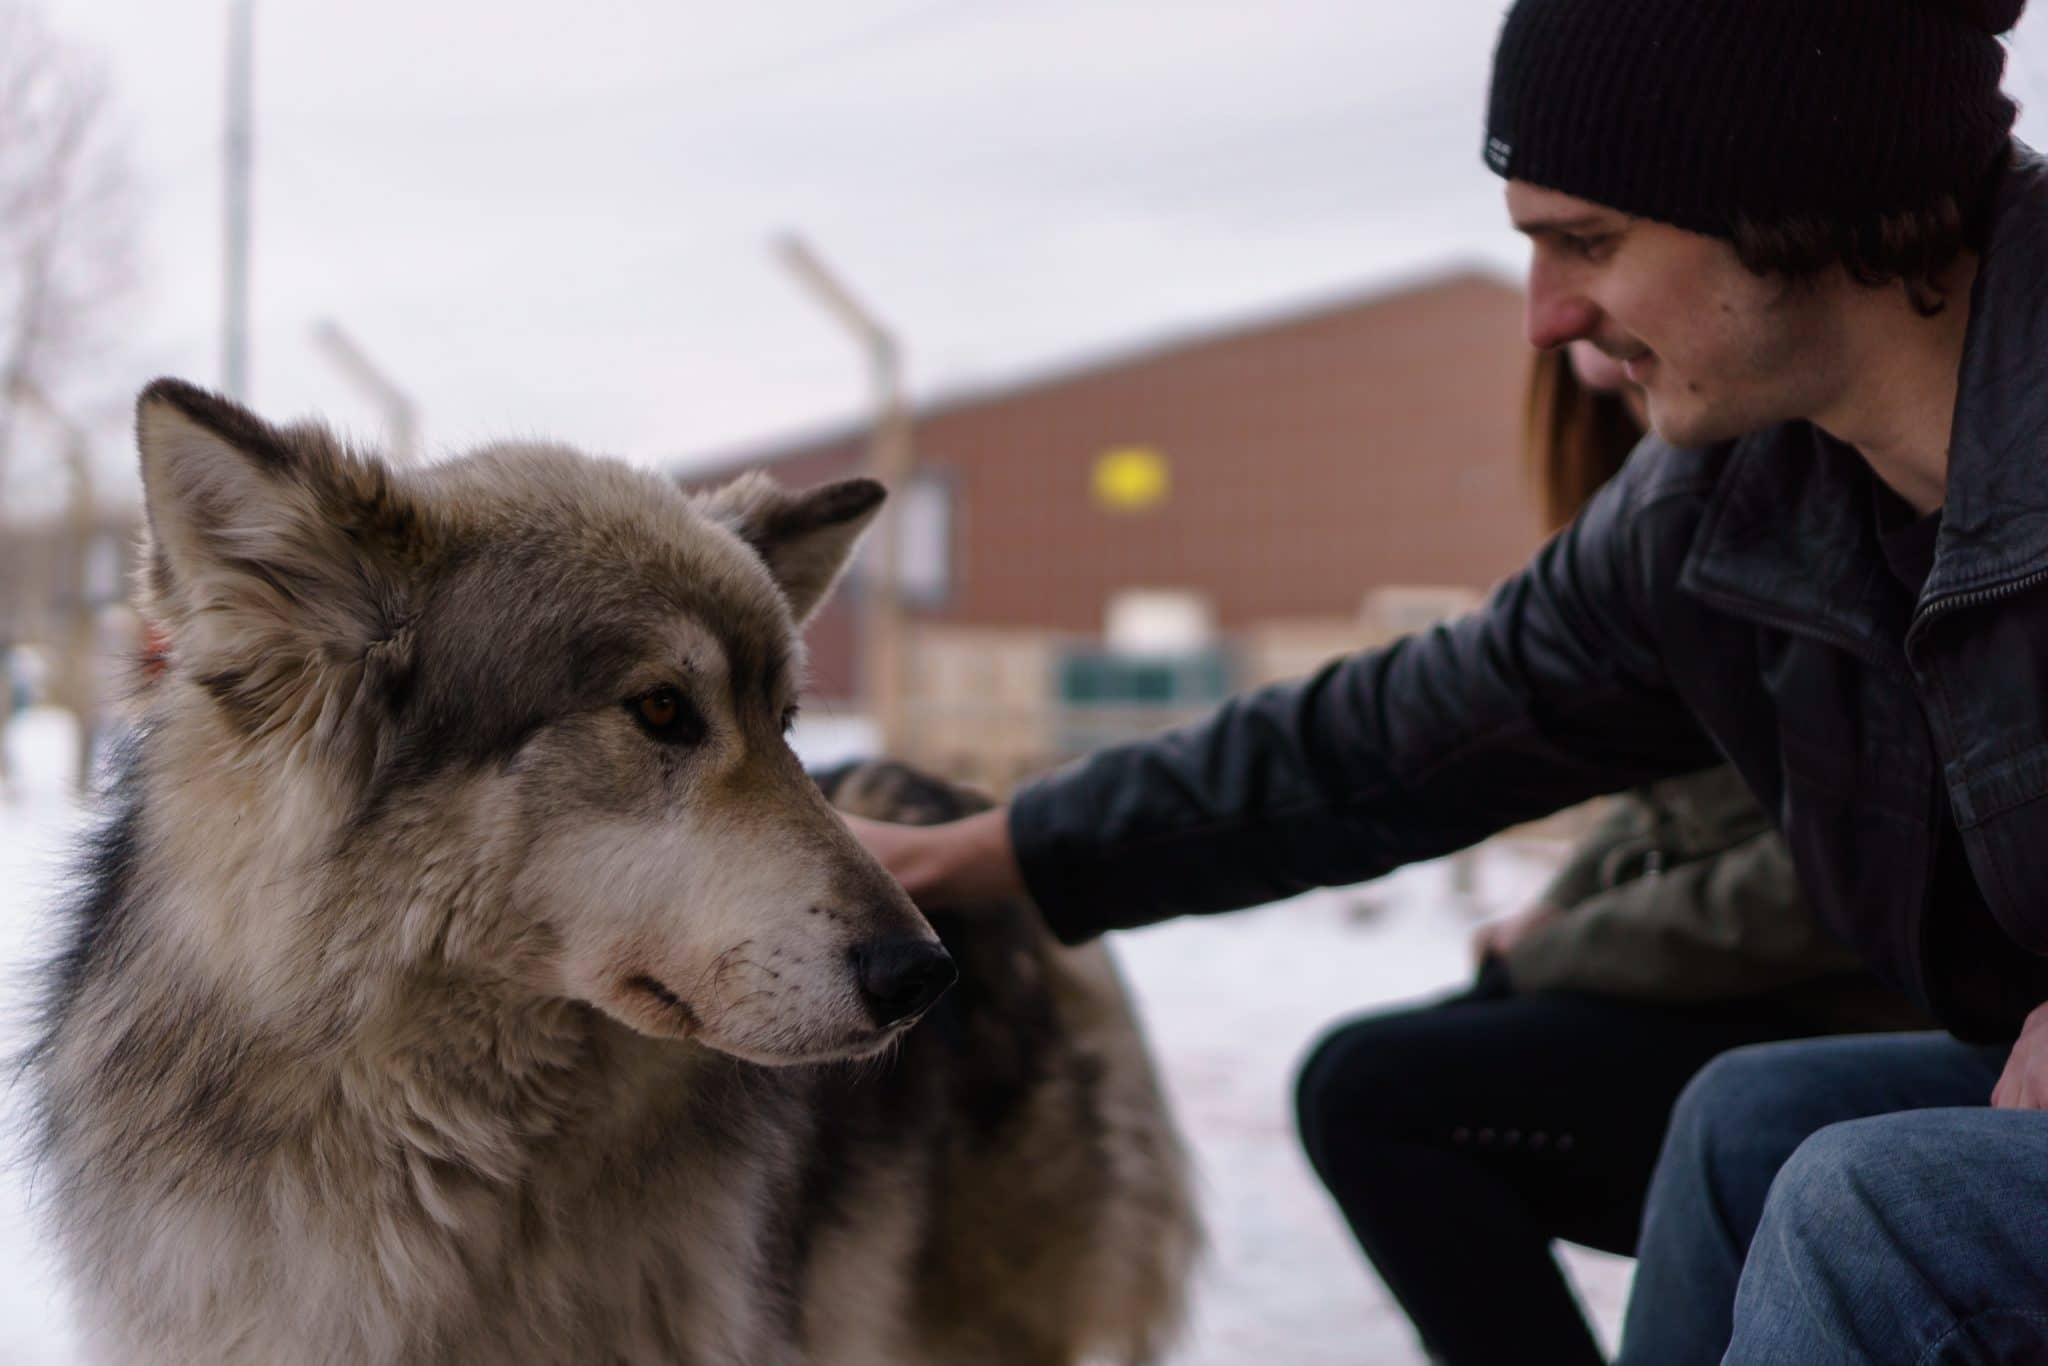 Petting one of the low-content wolfdogs on the interactive tour.